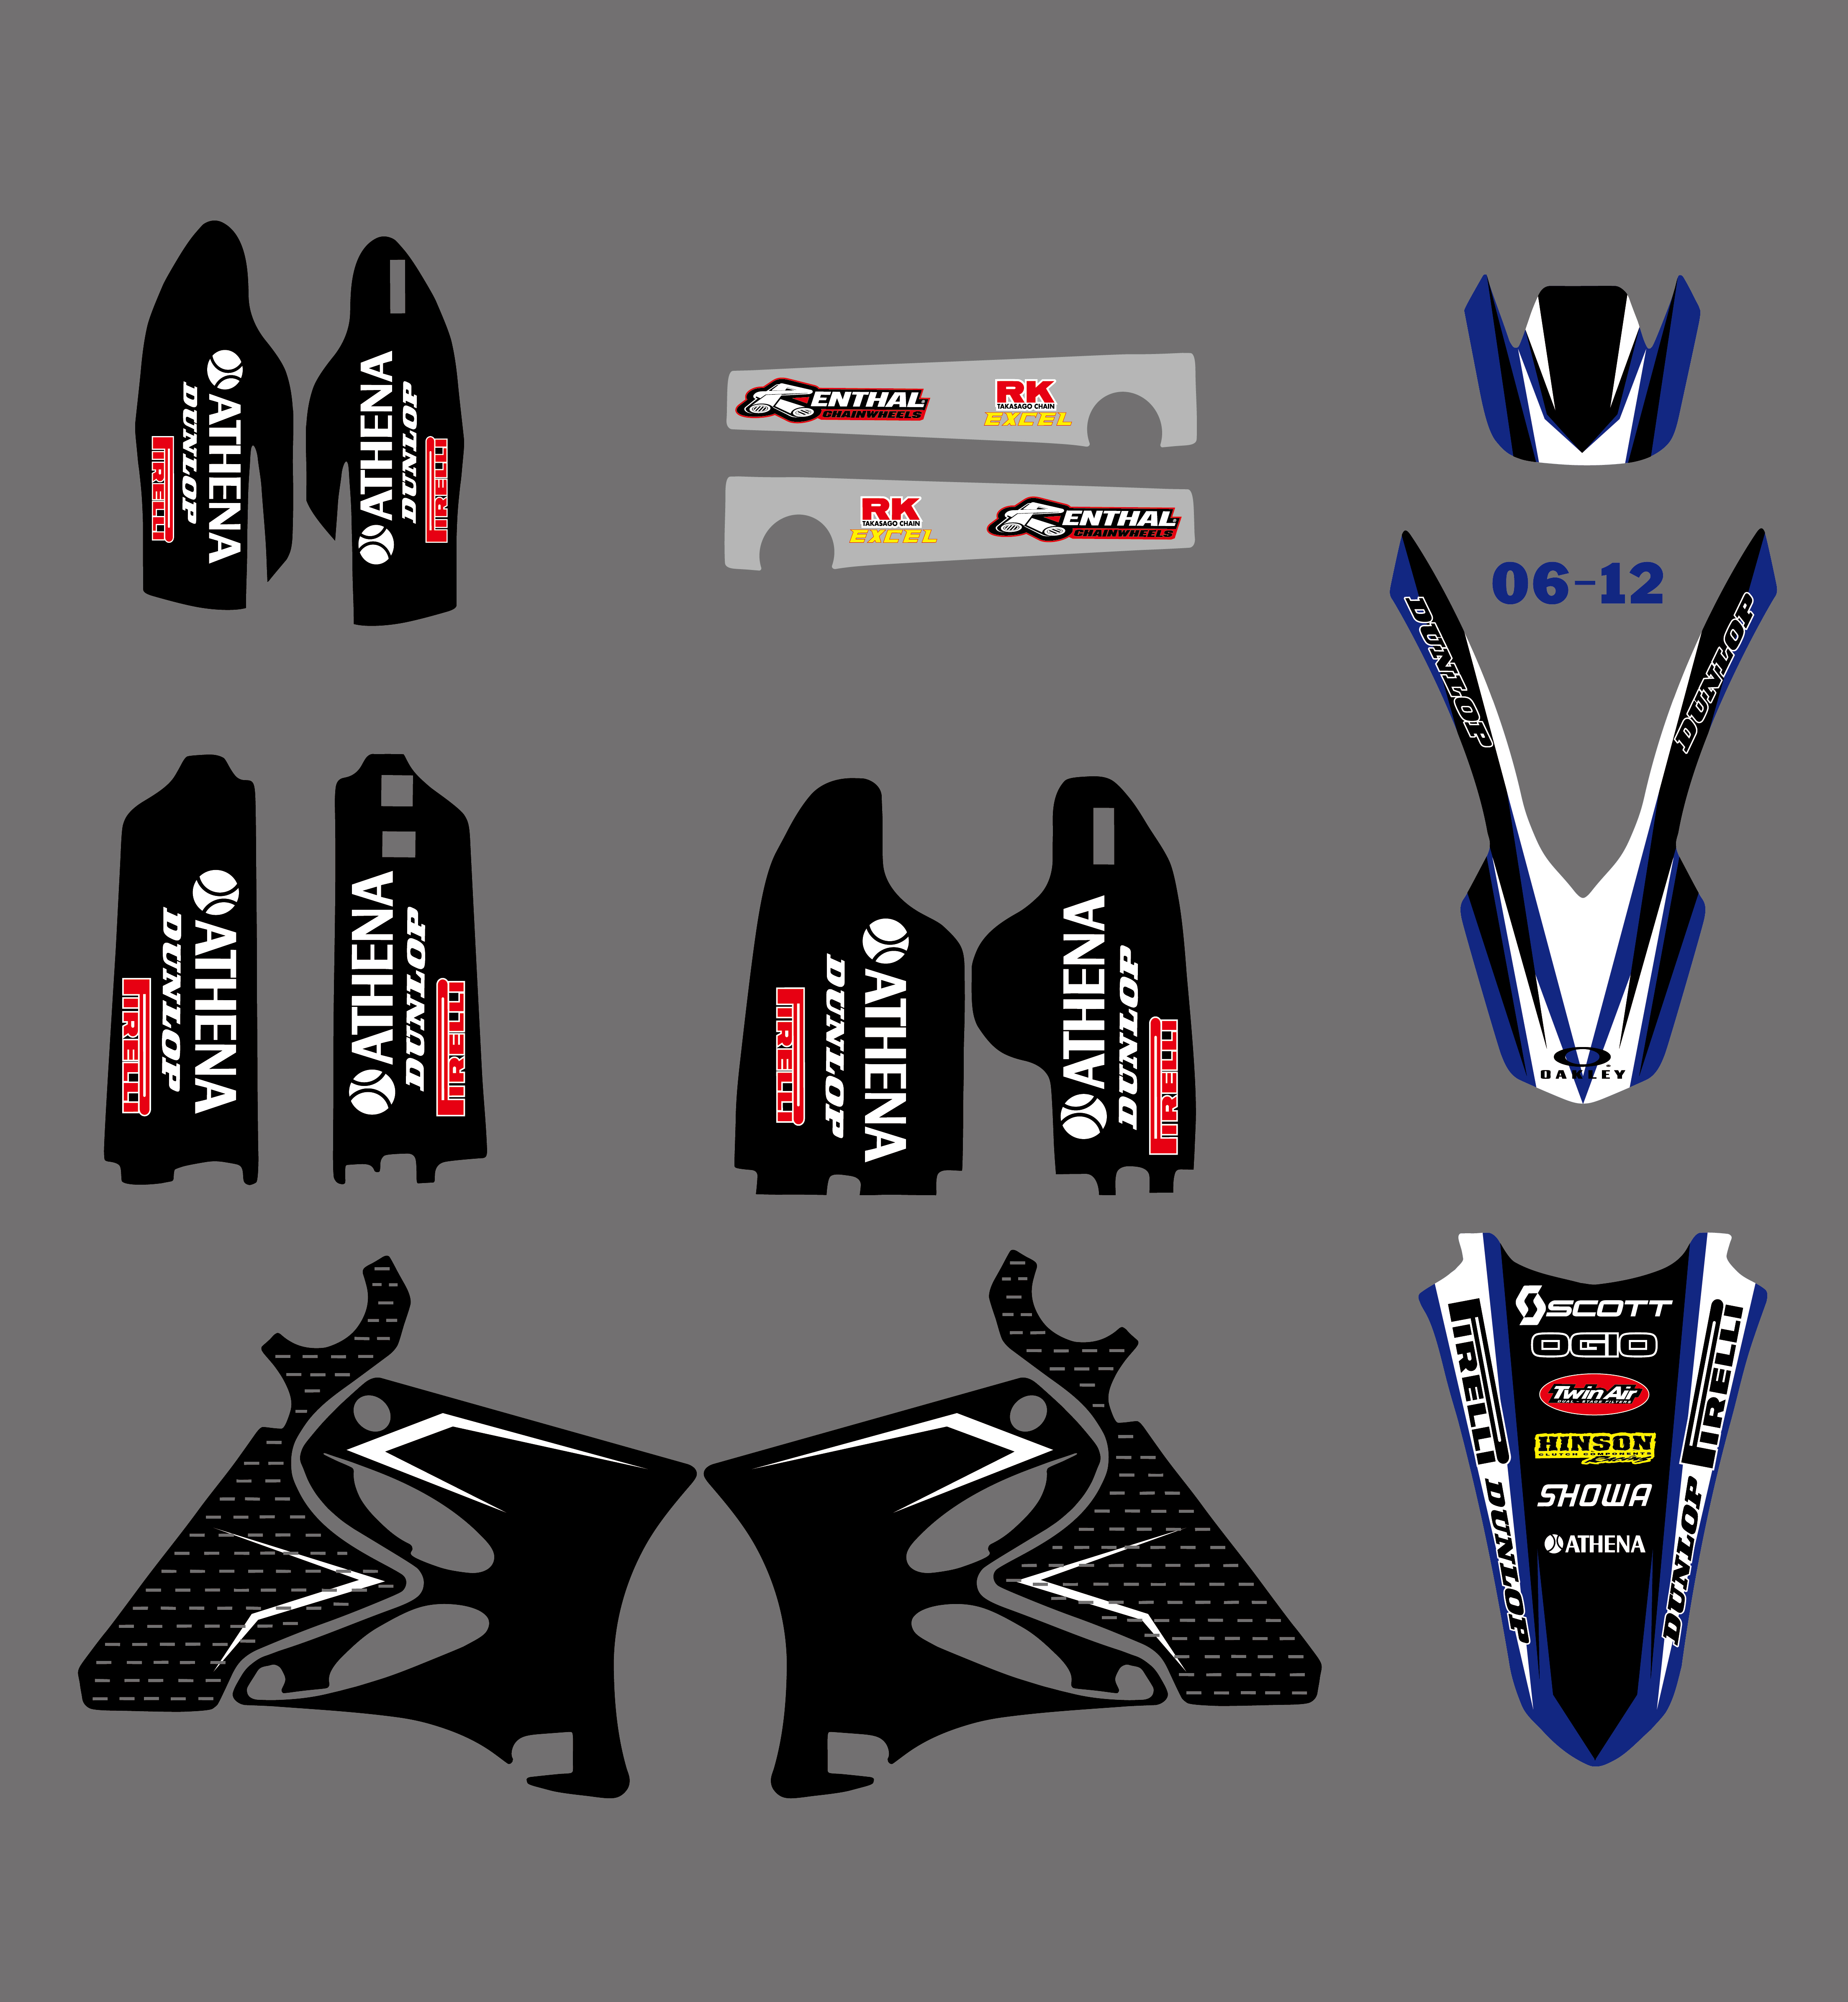 Nicecnc 0126 1 set team graphic decal fender fork tank stickers for yamaha yz125 yz250 yz 125 250 2002 2010 2011 2012 2013 2014 in decals stickers from